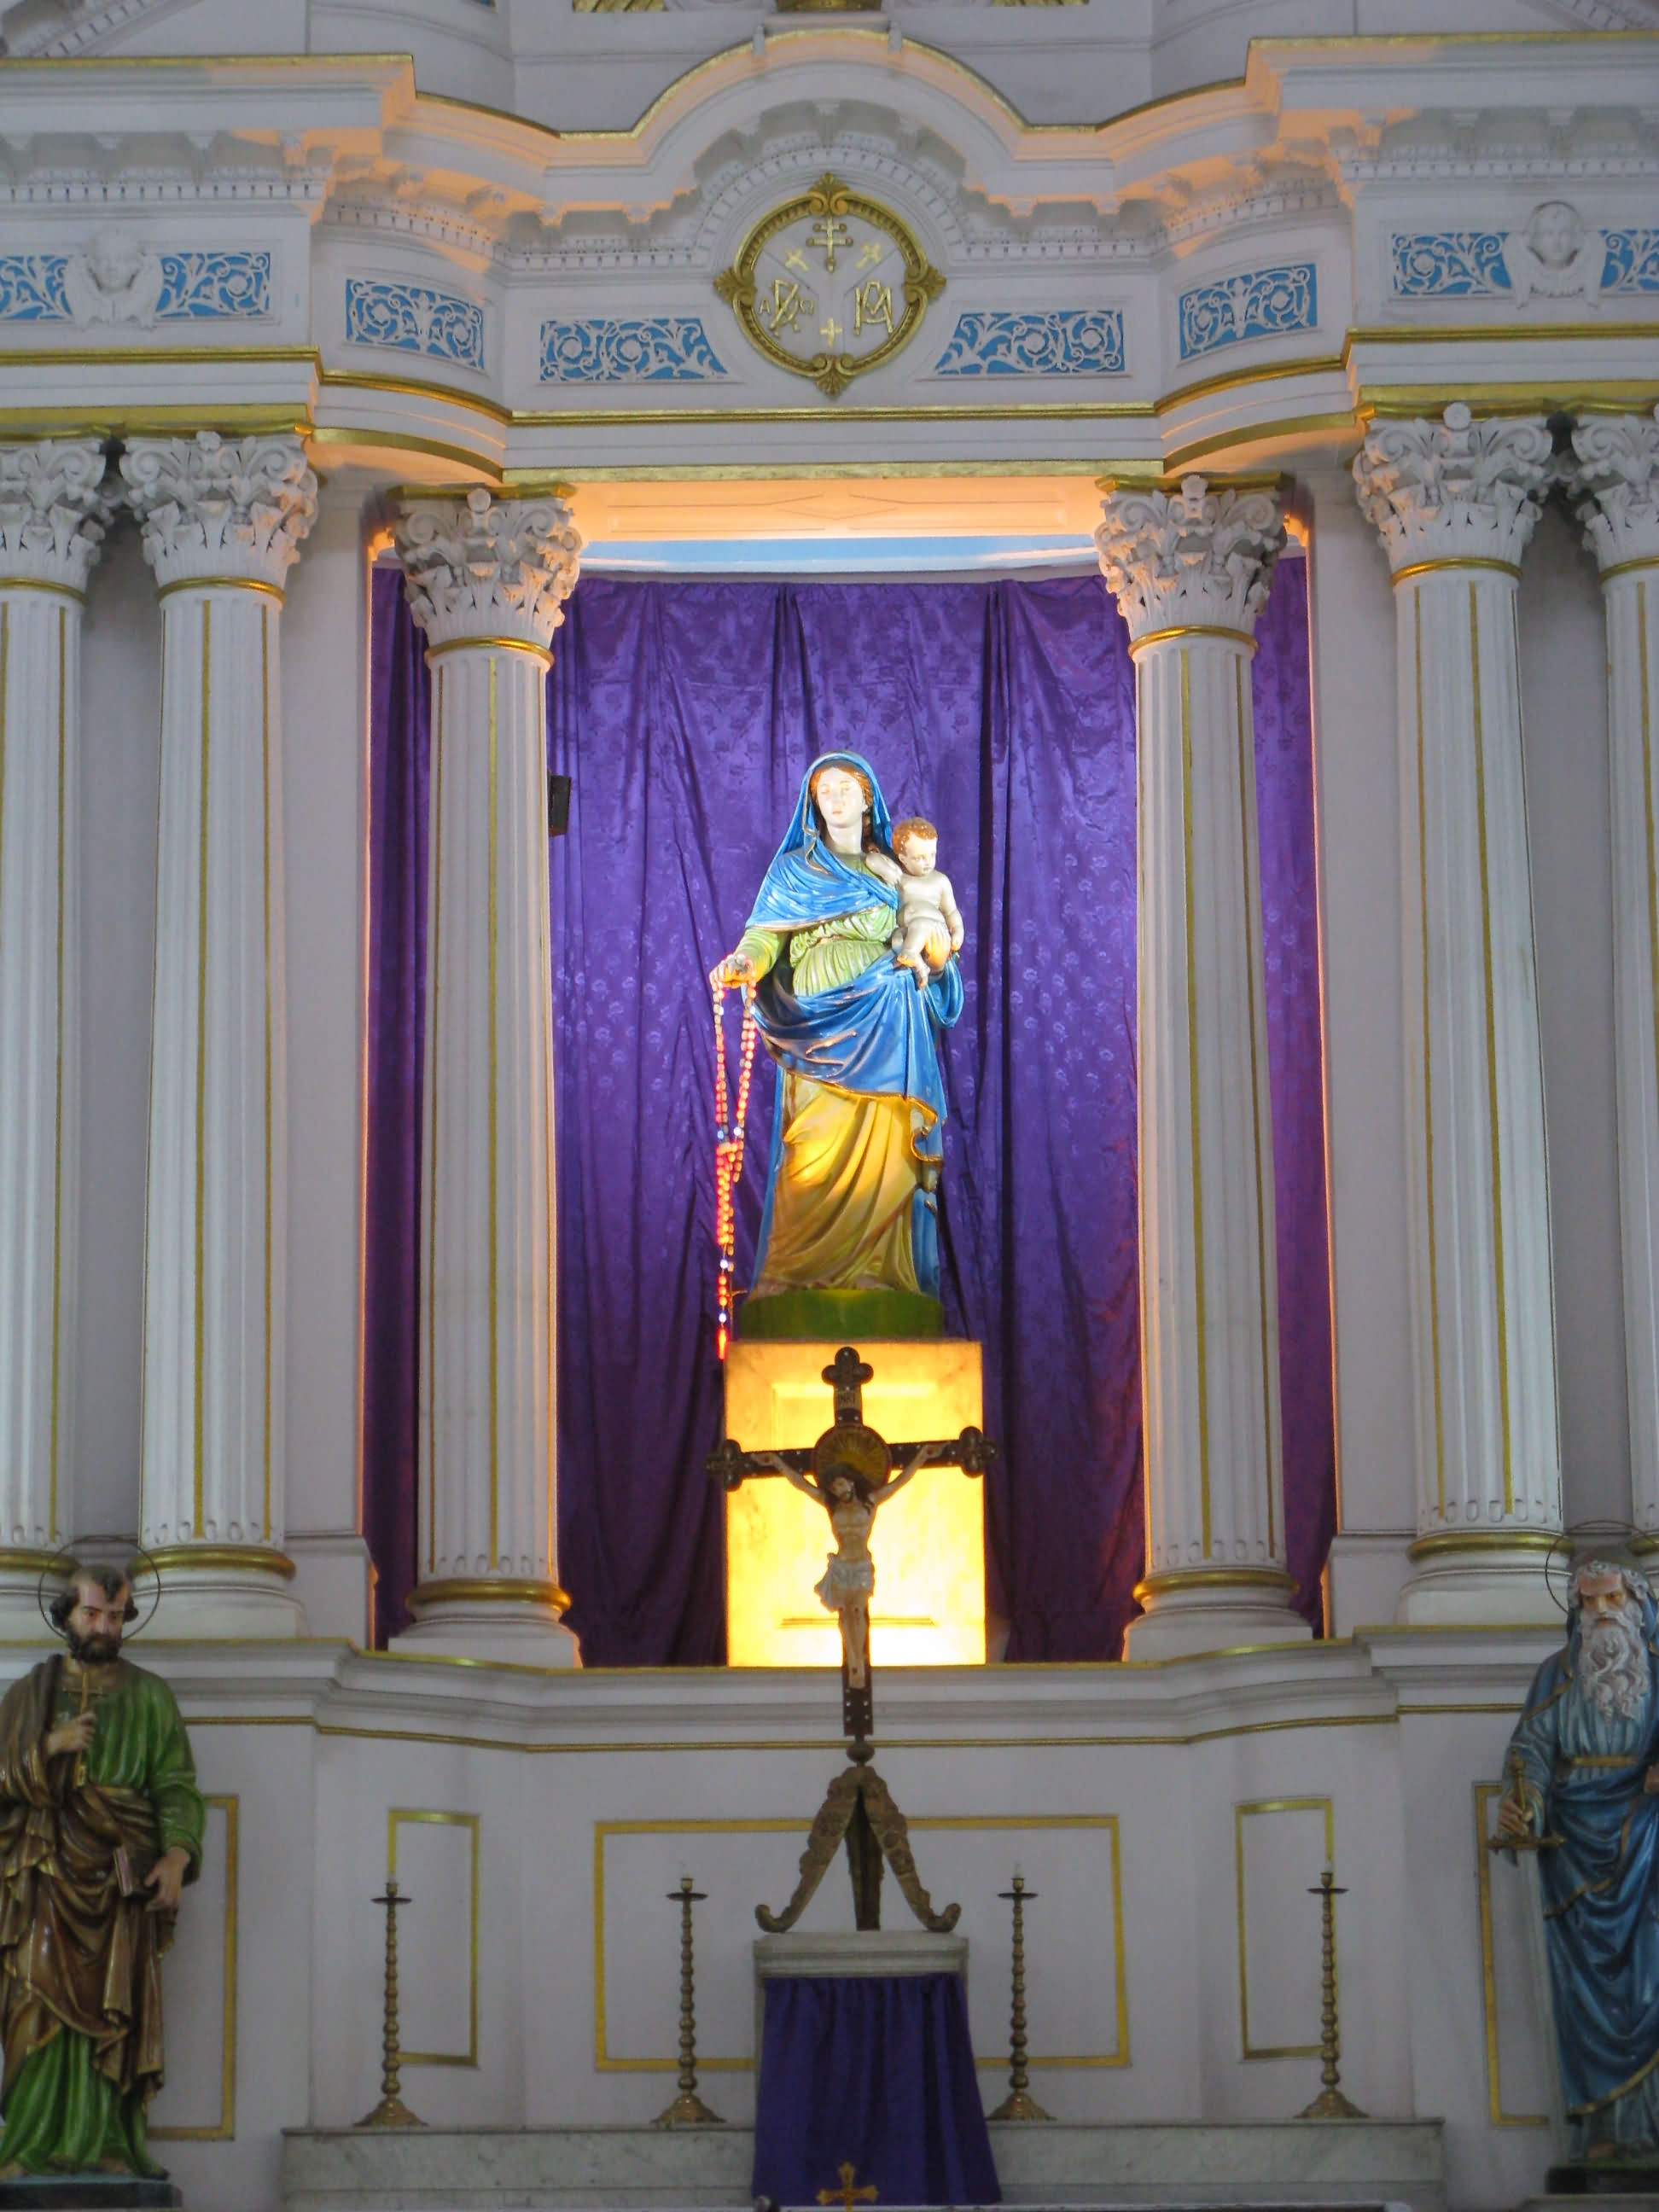 Madonna And Child In The Most Holy Rosary Church - FindMessages.com